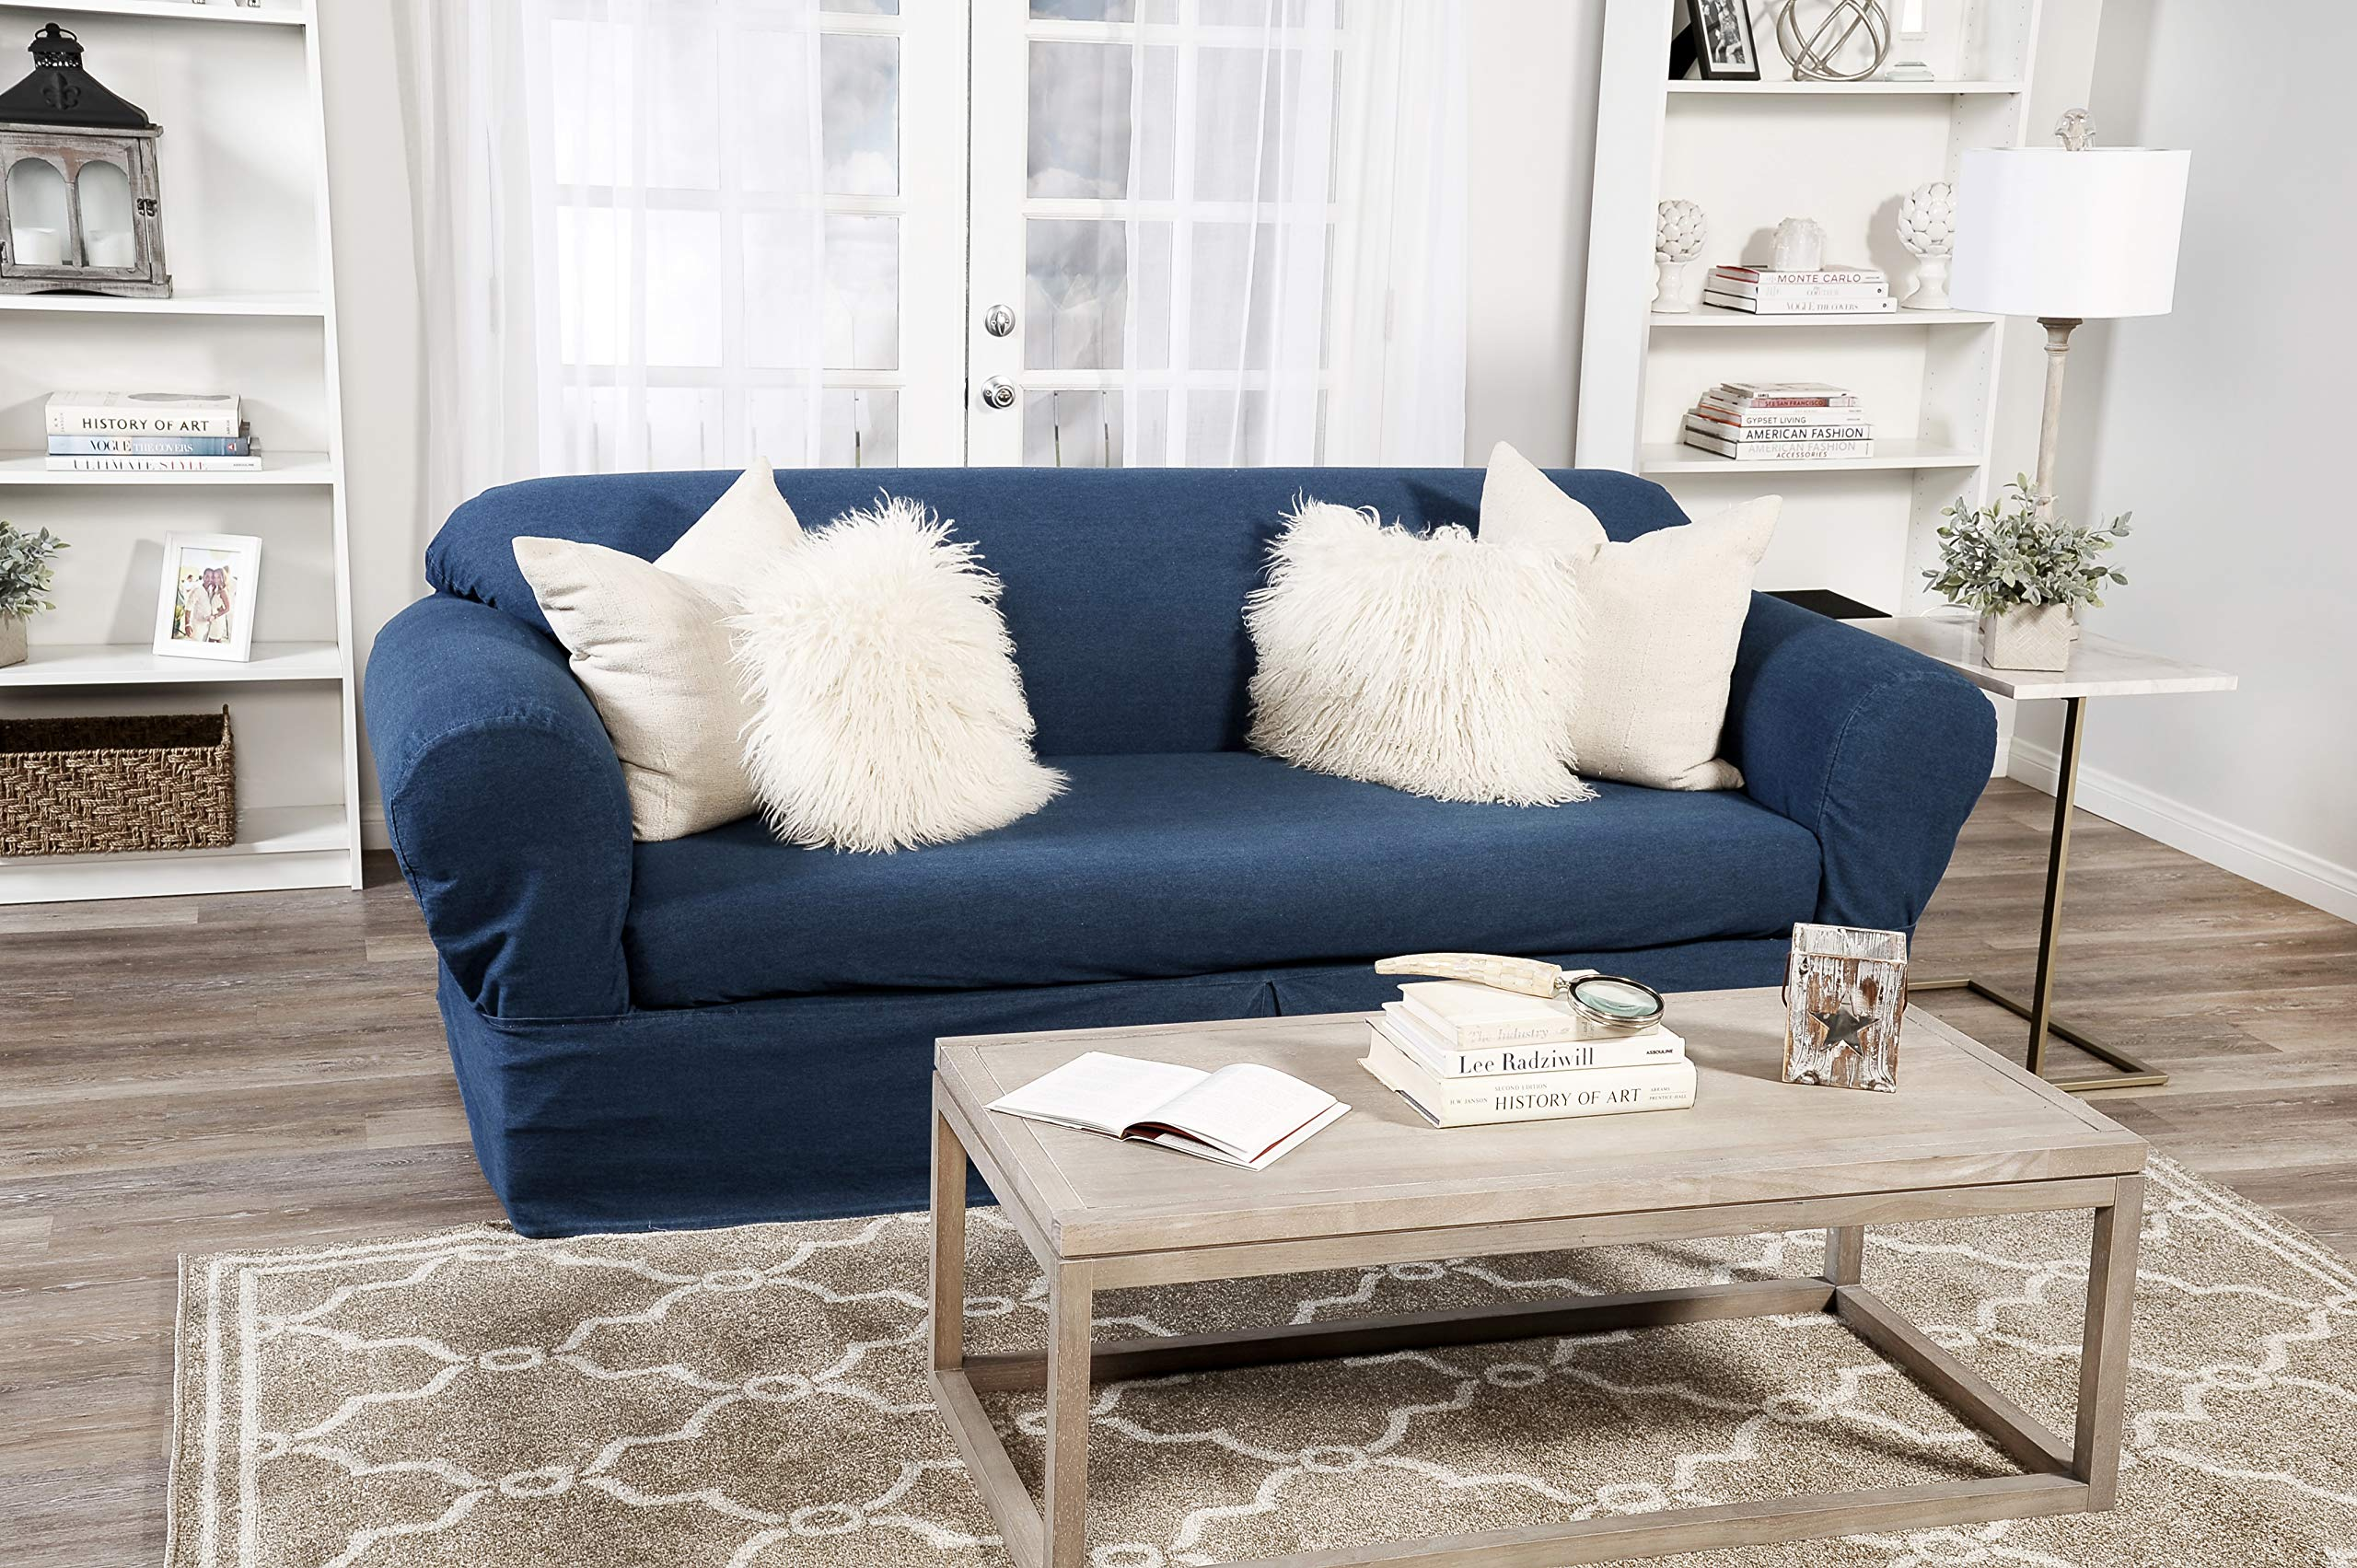 Classic Slipcovers 2 Piece Washed Denim loveseat slipcover, Blue by Classic Slipcovers